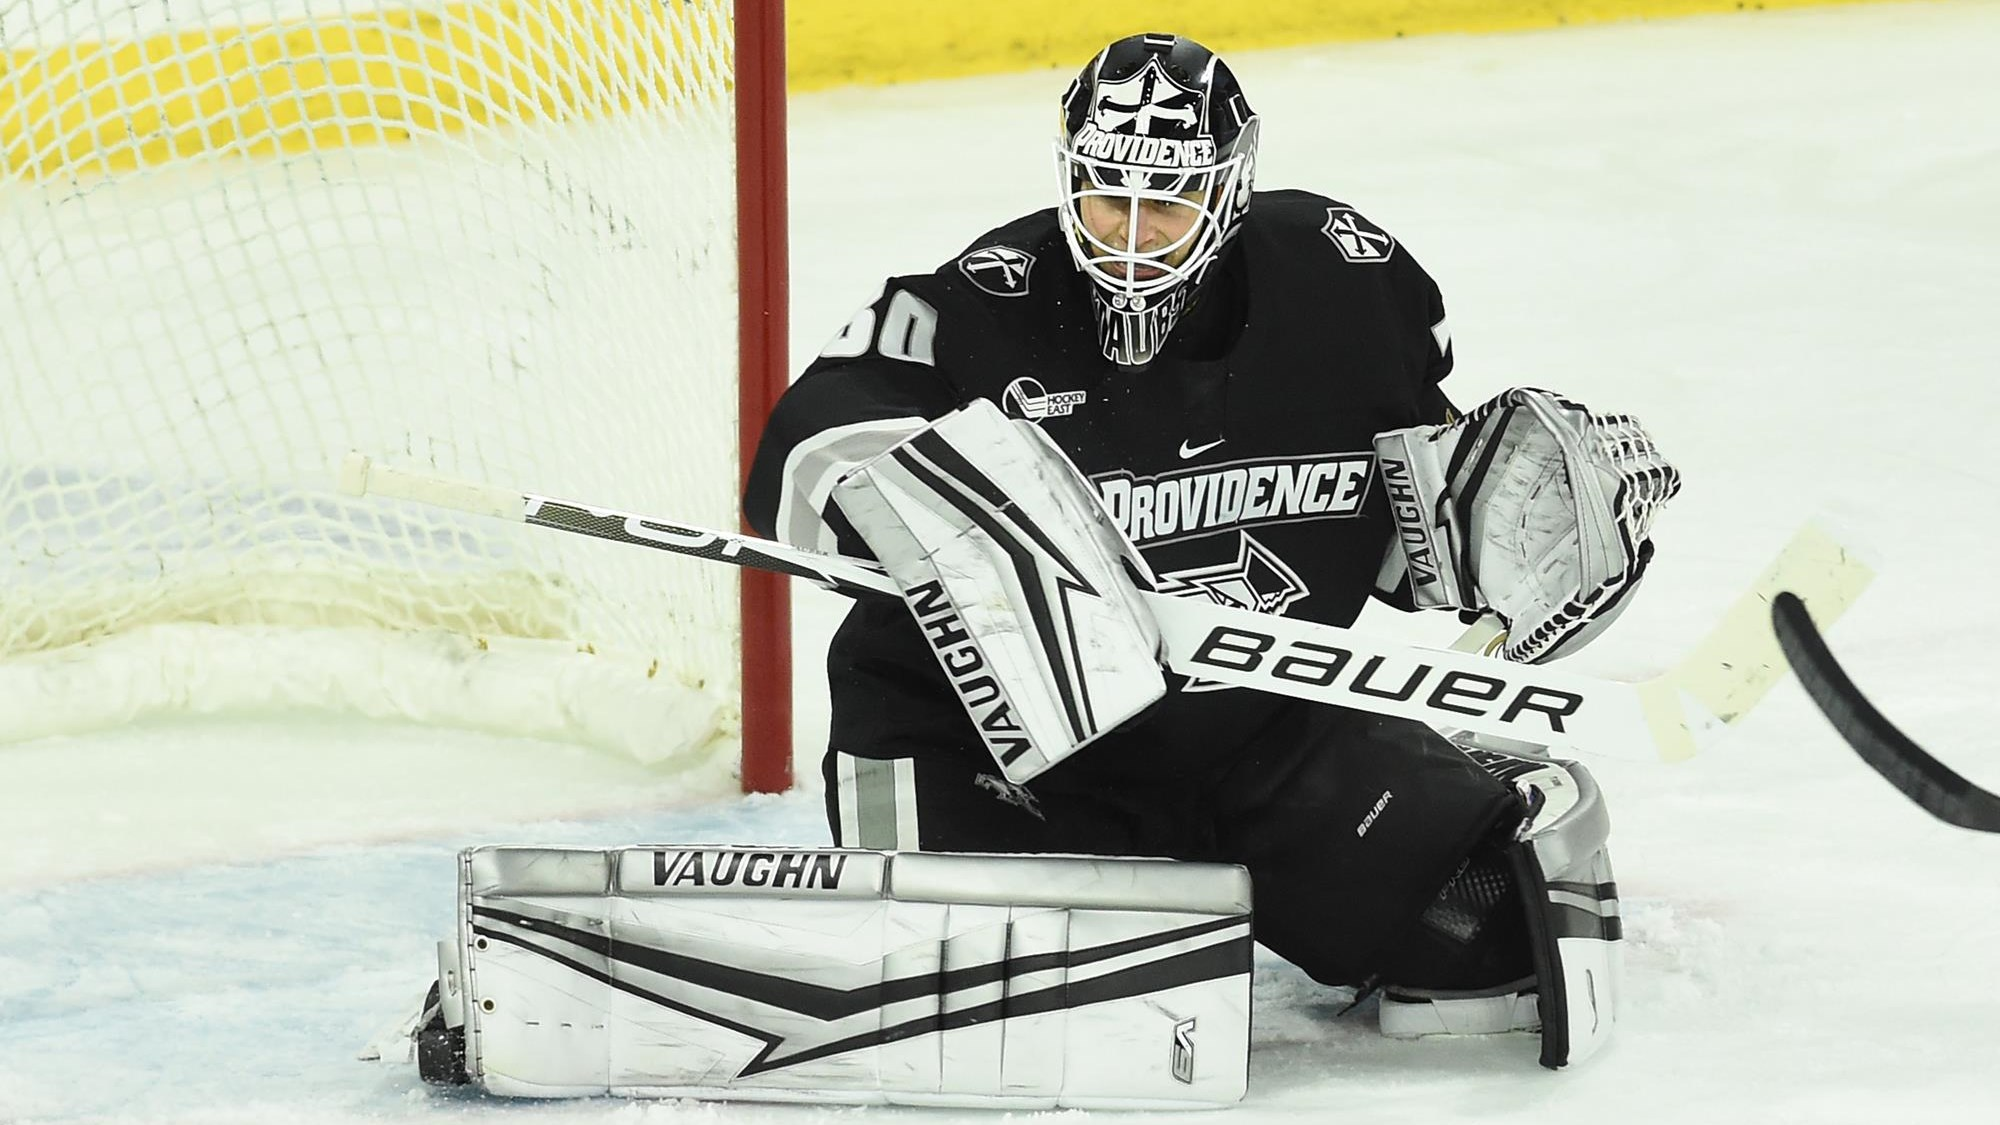 #18 Friars Split Weekend Series With #8 UMass After Shootout Loss | ABC6